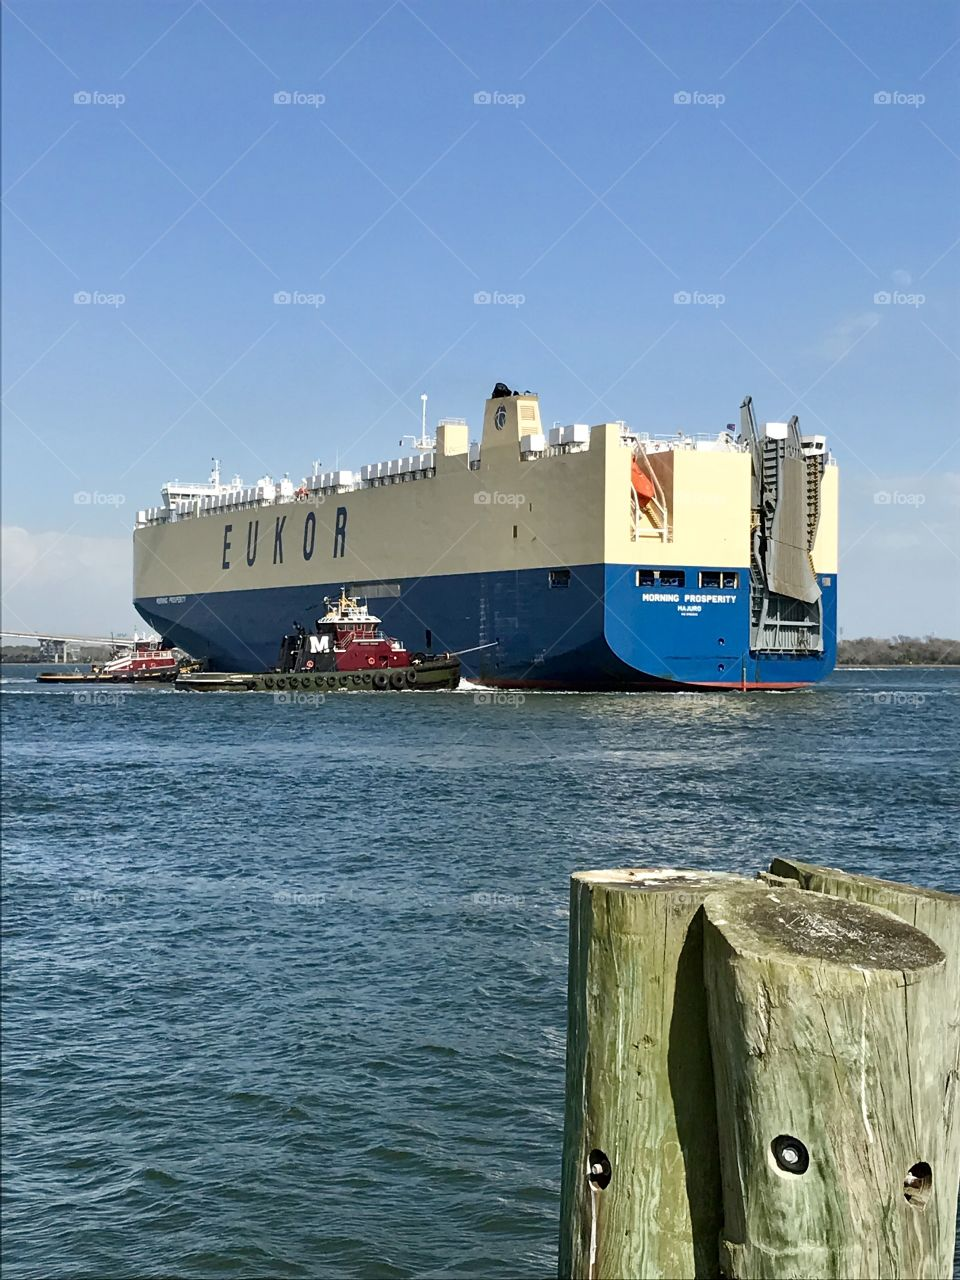 Tug boats bringing Car carrier ship into port in Charleston Harbor